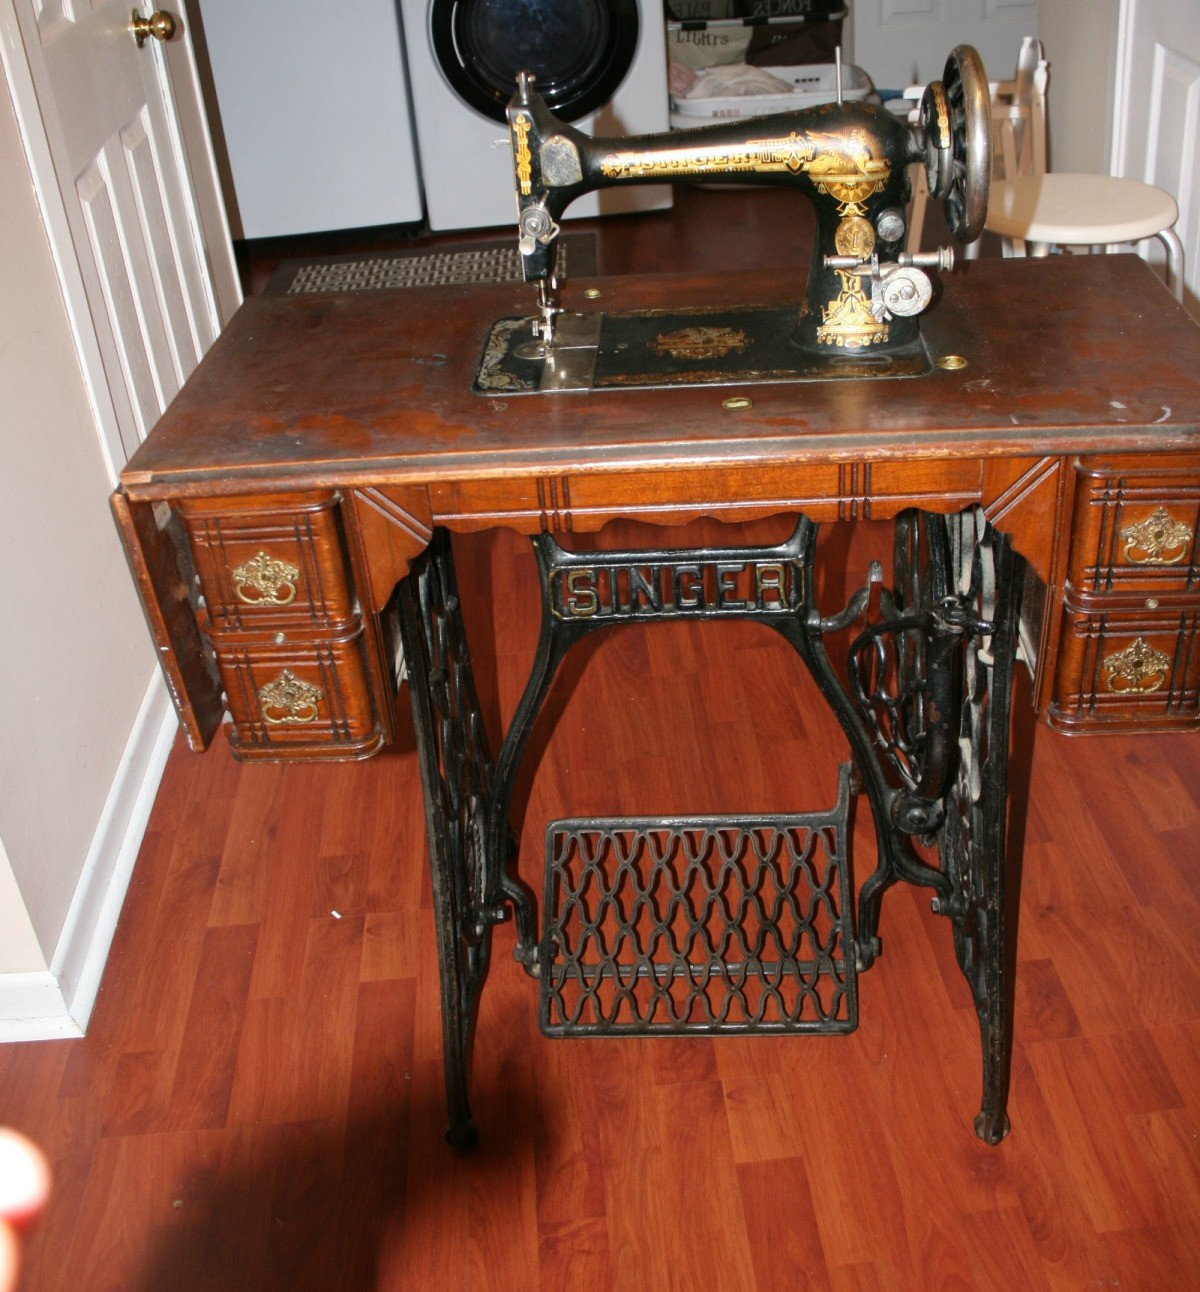 Value Of A Singer Treadle Sewing Machine Thriftyfun